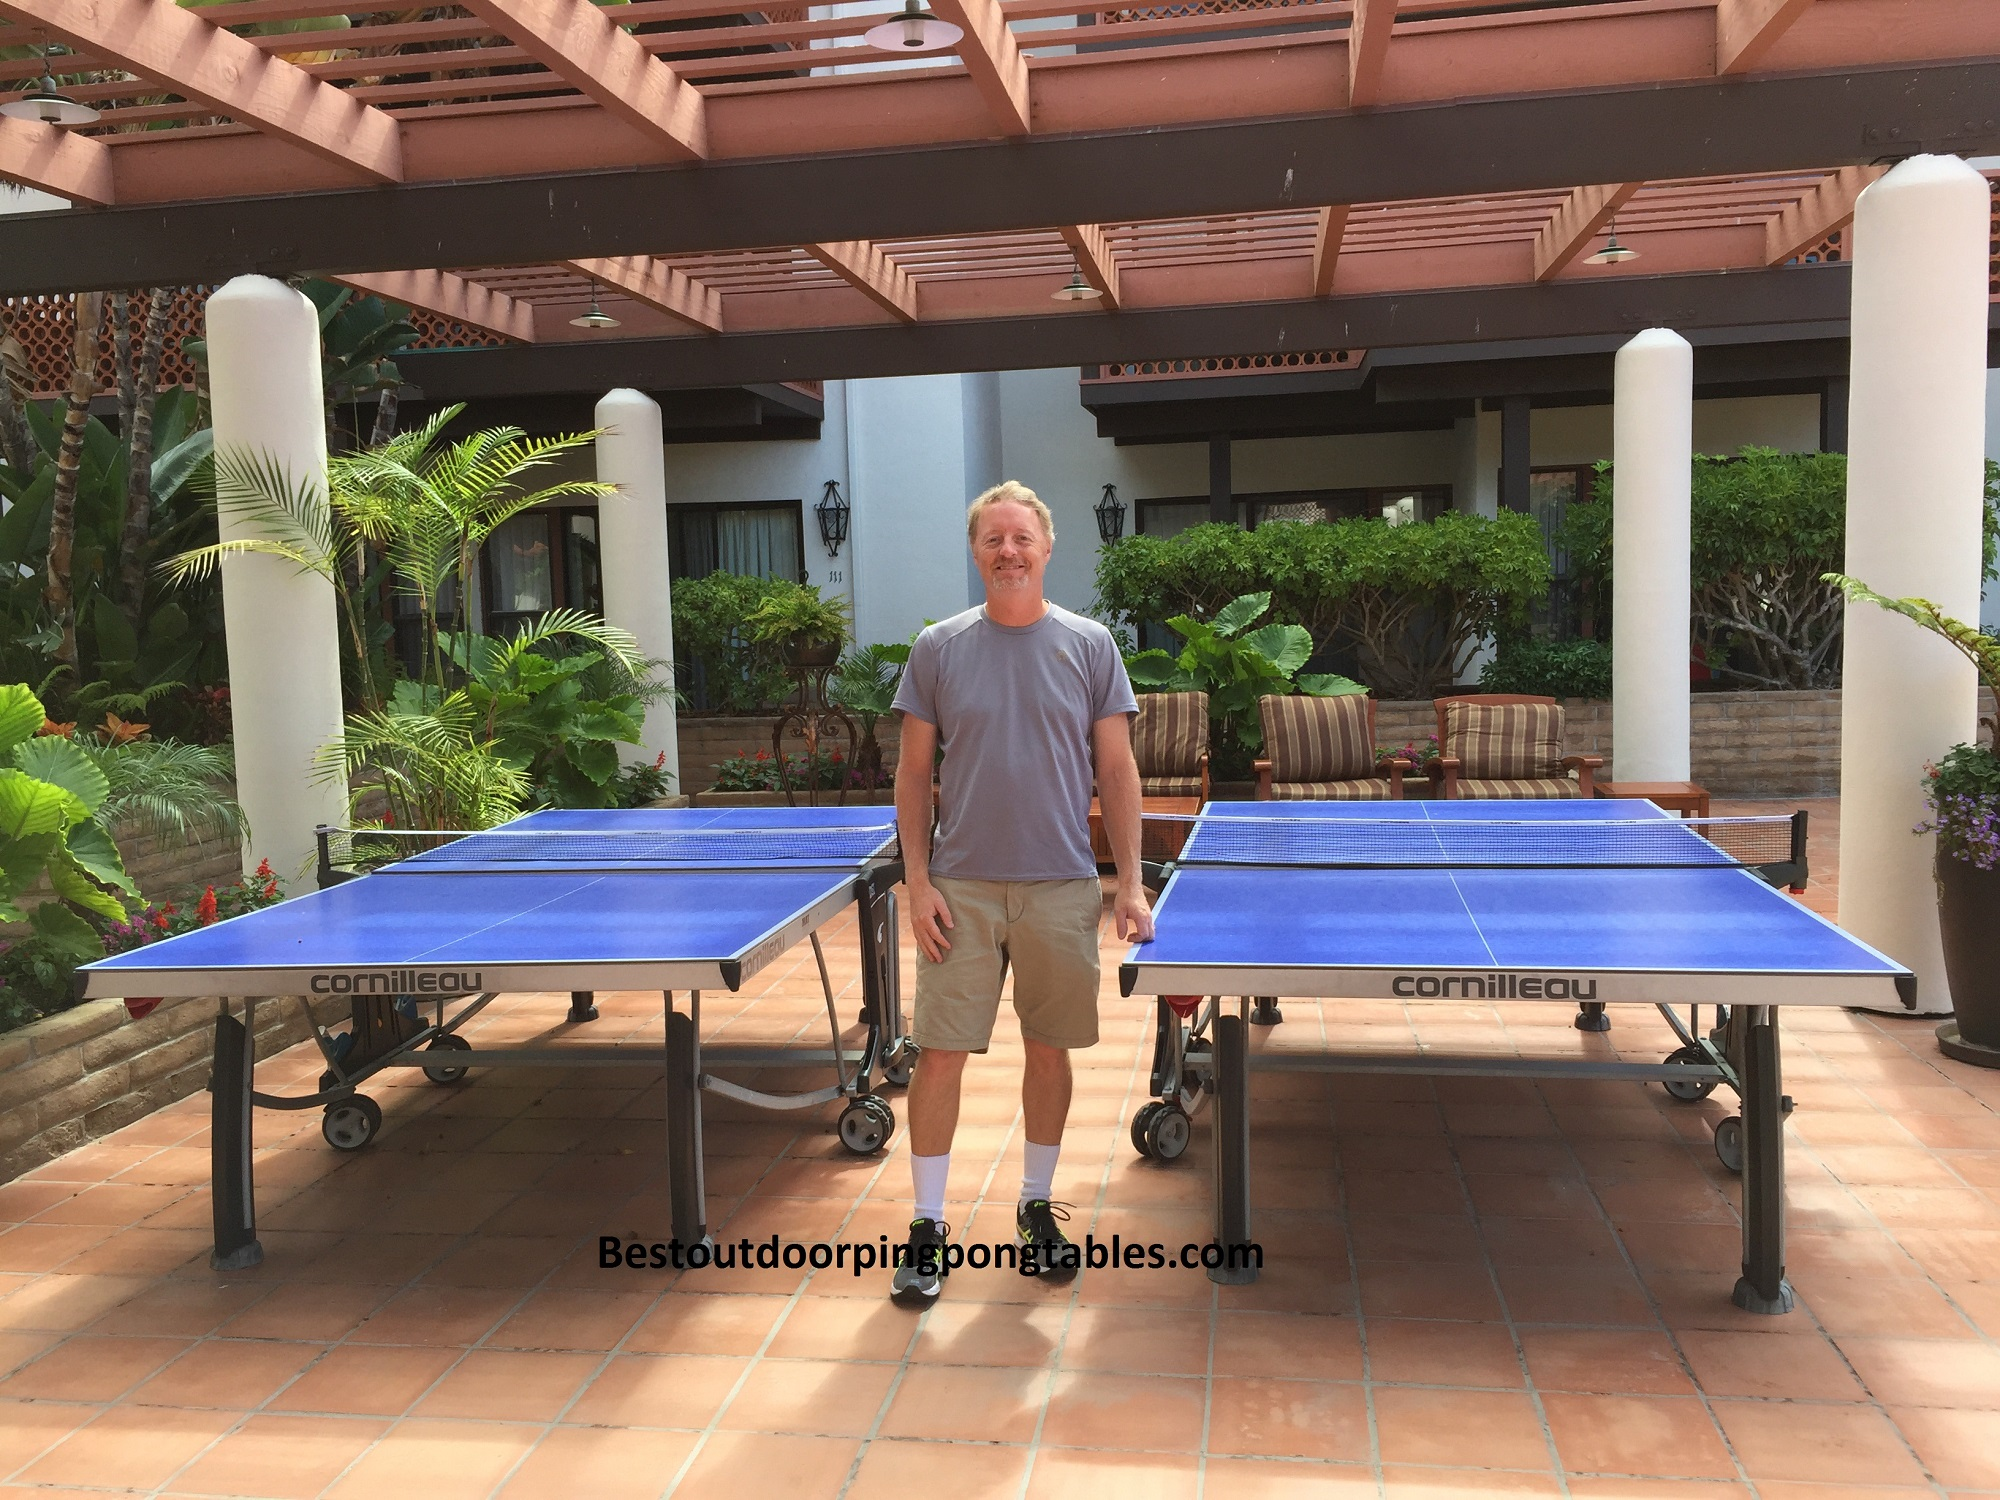 Cornilleau 500m crossover outdoor ping pong table - Table ping pong decathlon outdoor 500 ...